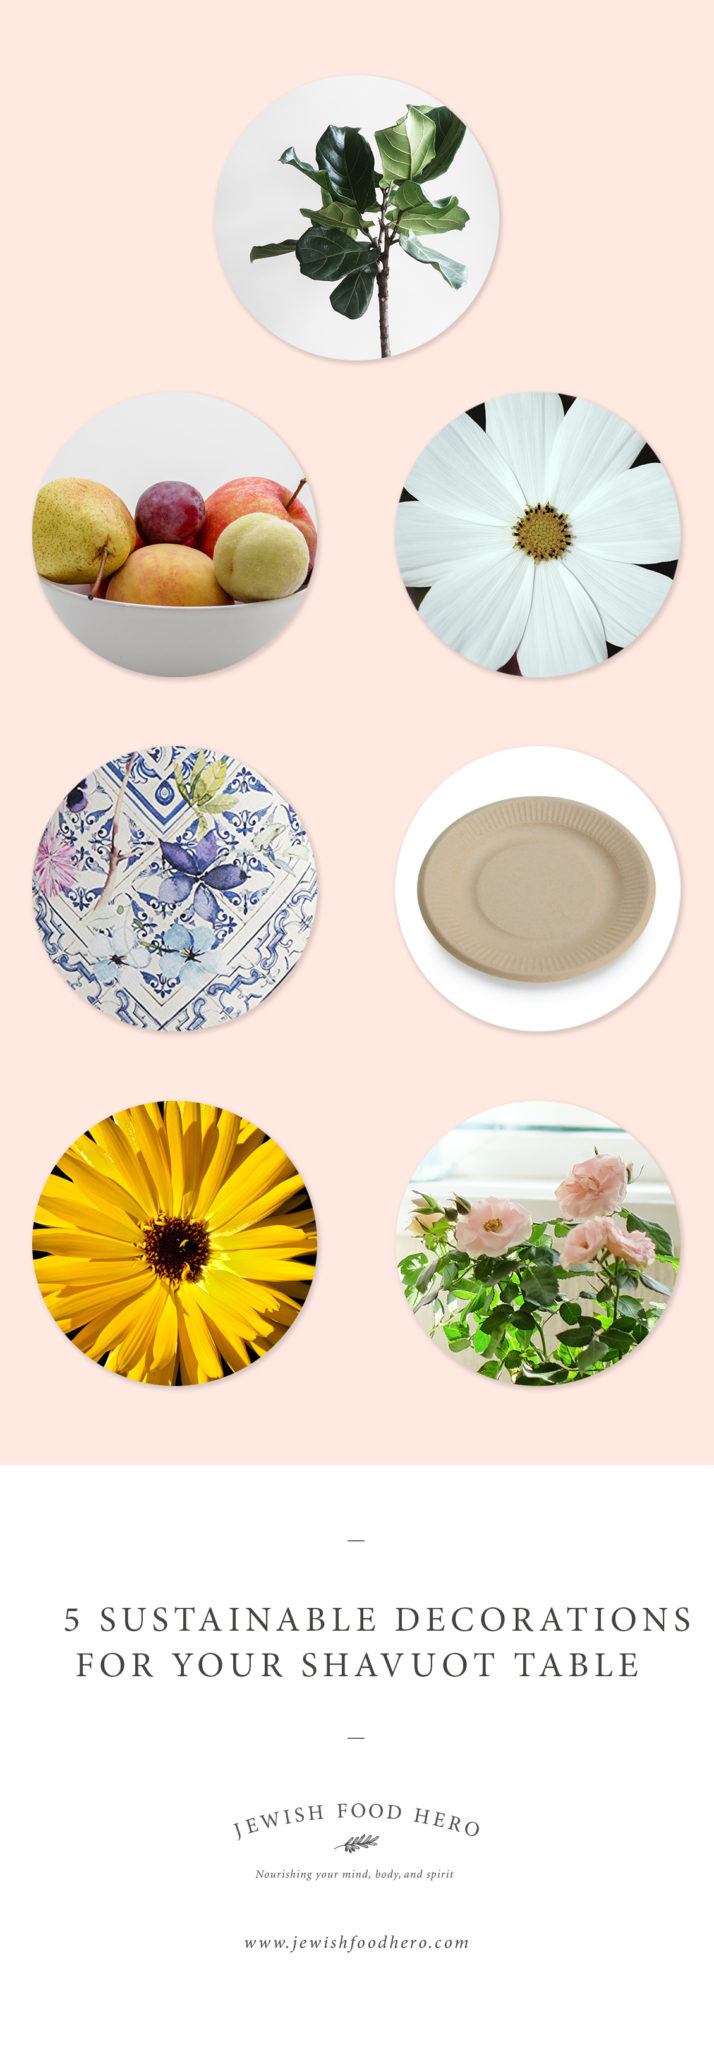 sustainable decorations for Shavuot table, decoration ideas for Shavuot